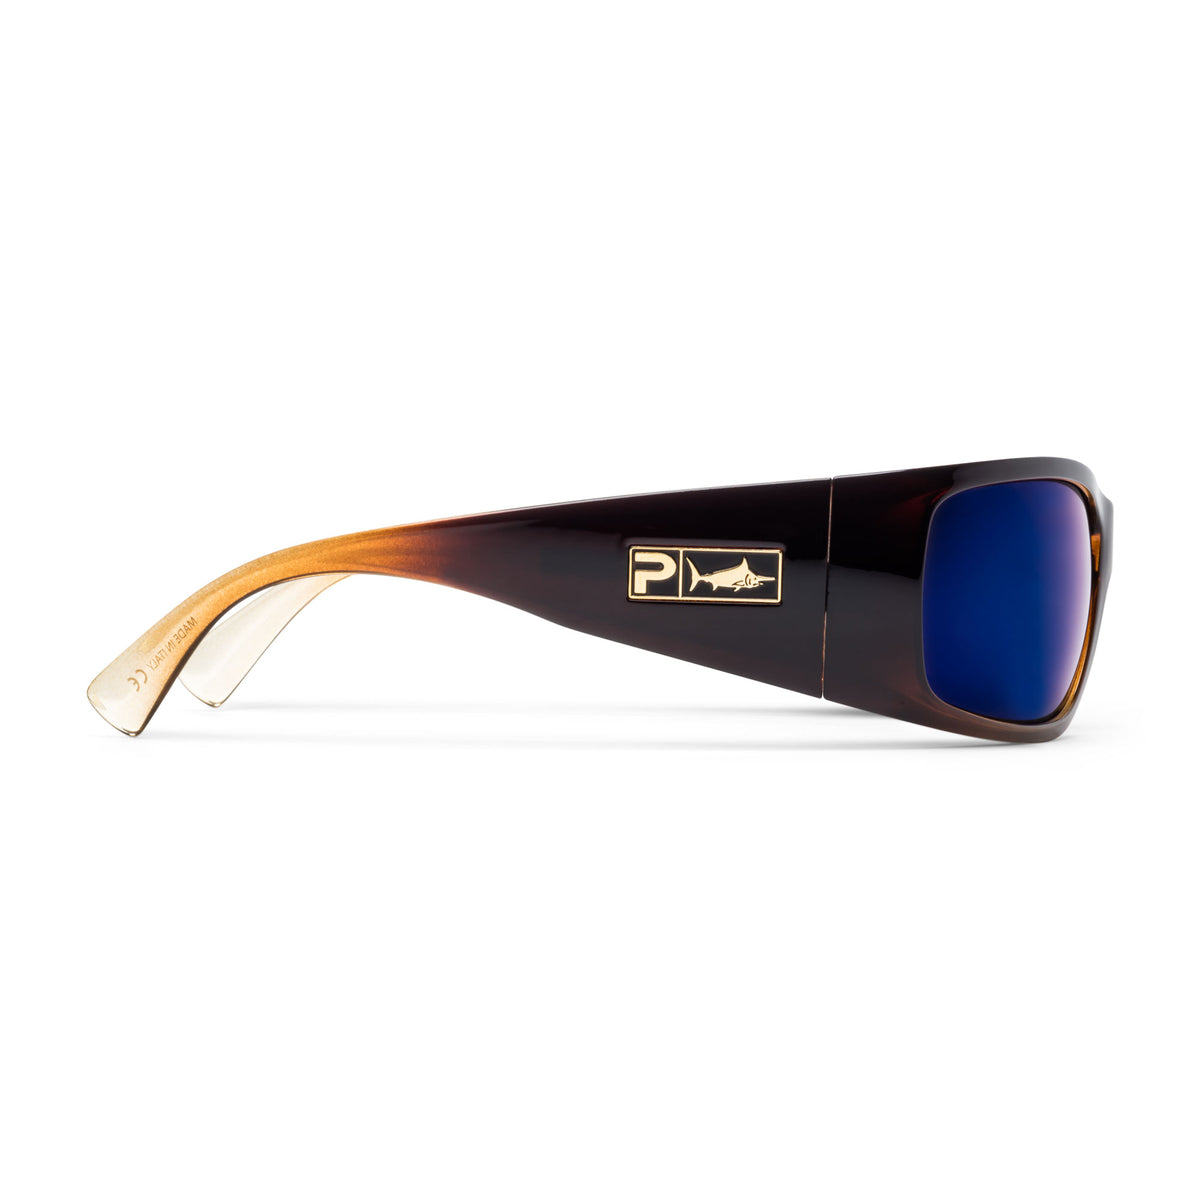 Twin Diesel - Polarized Polycarbonate Lens Big Image - 3